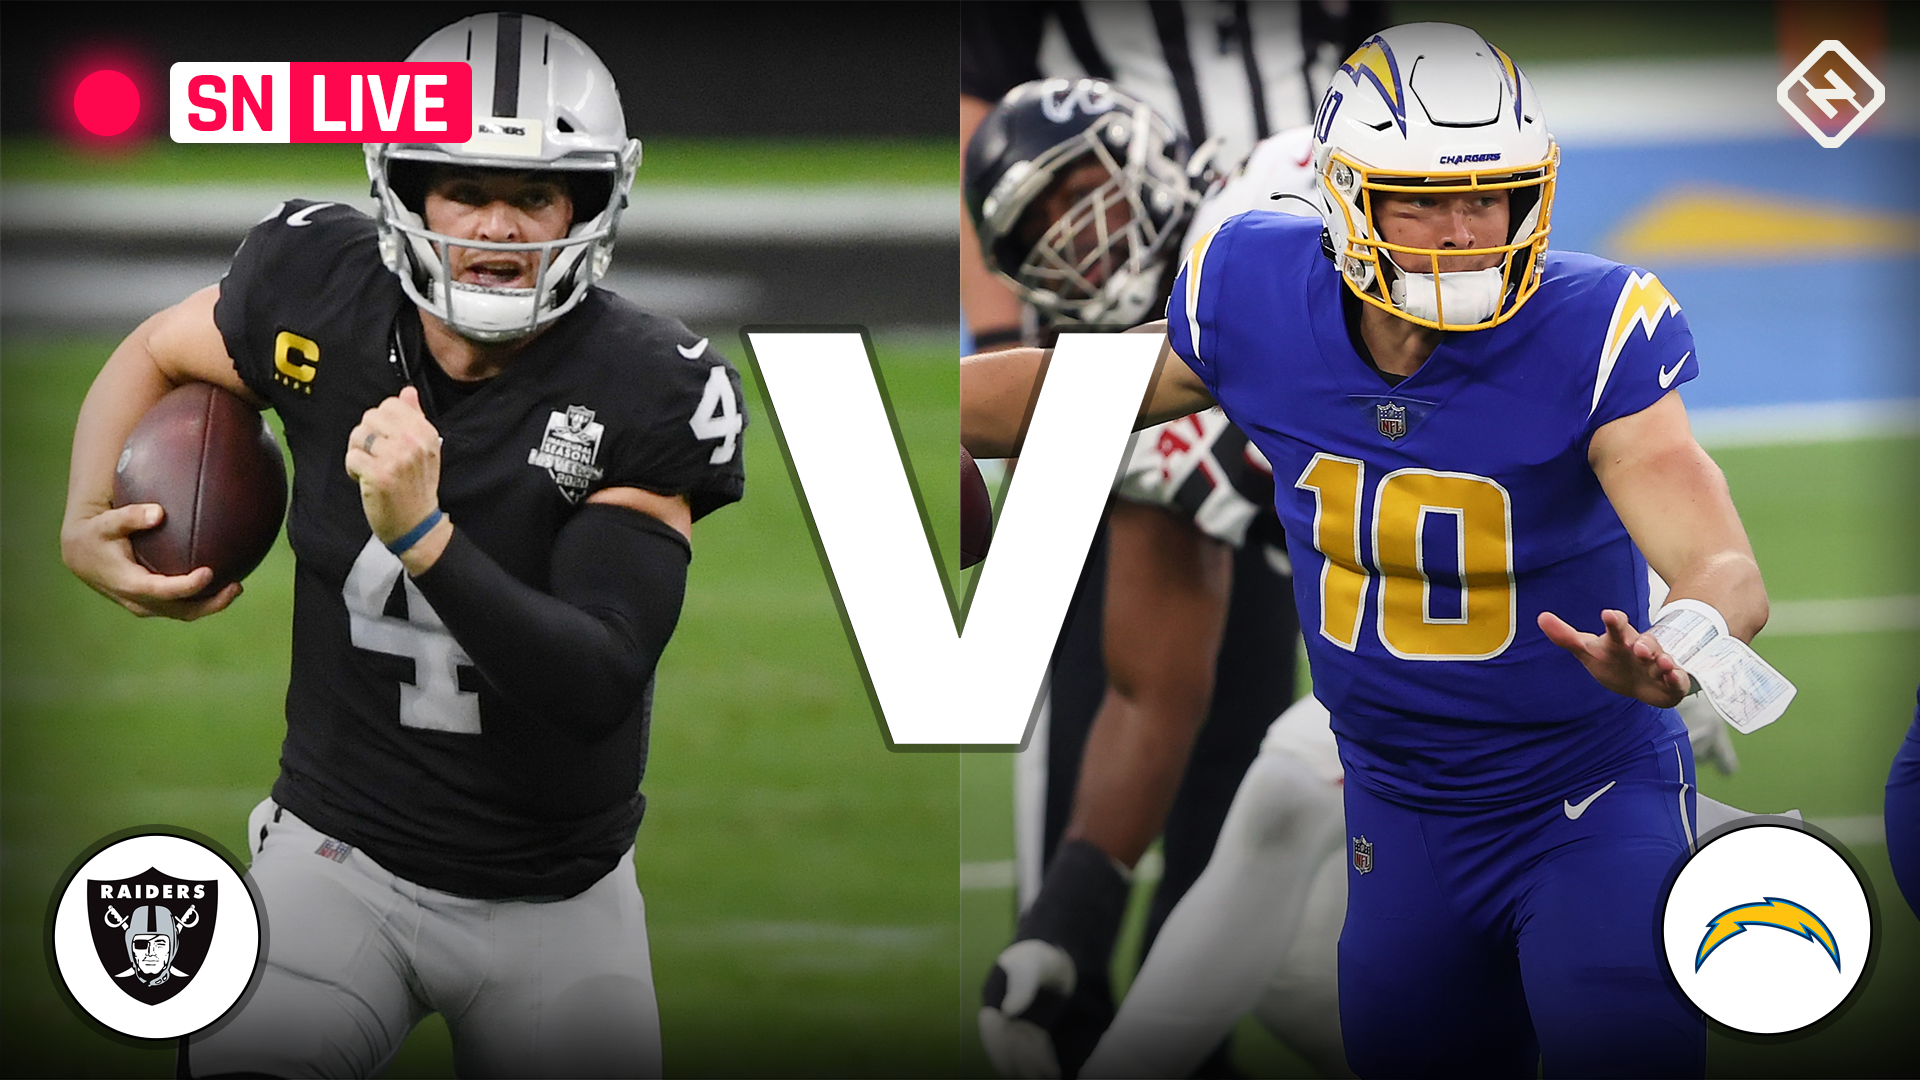 Raiders vs. Chargers score, results: Justin Herbert leads LA to overtime victory